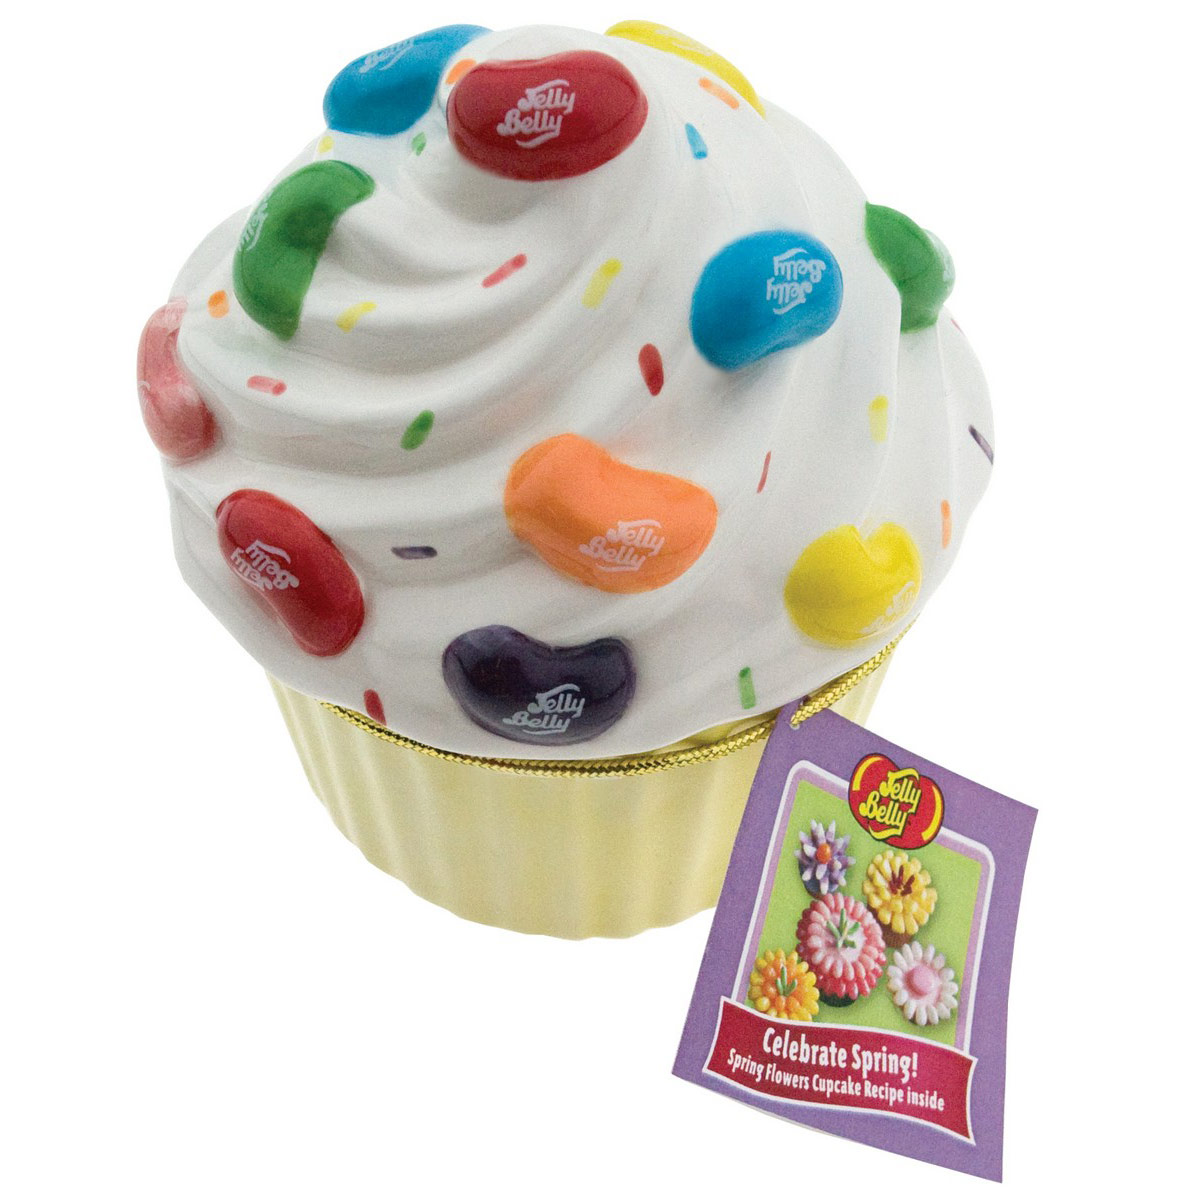 Ceramic Cupcake Candy Dish with 20 Jelly Bean Flavors Mix